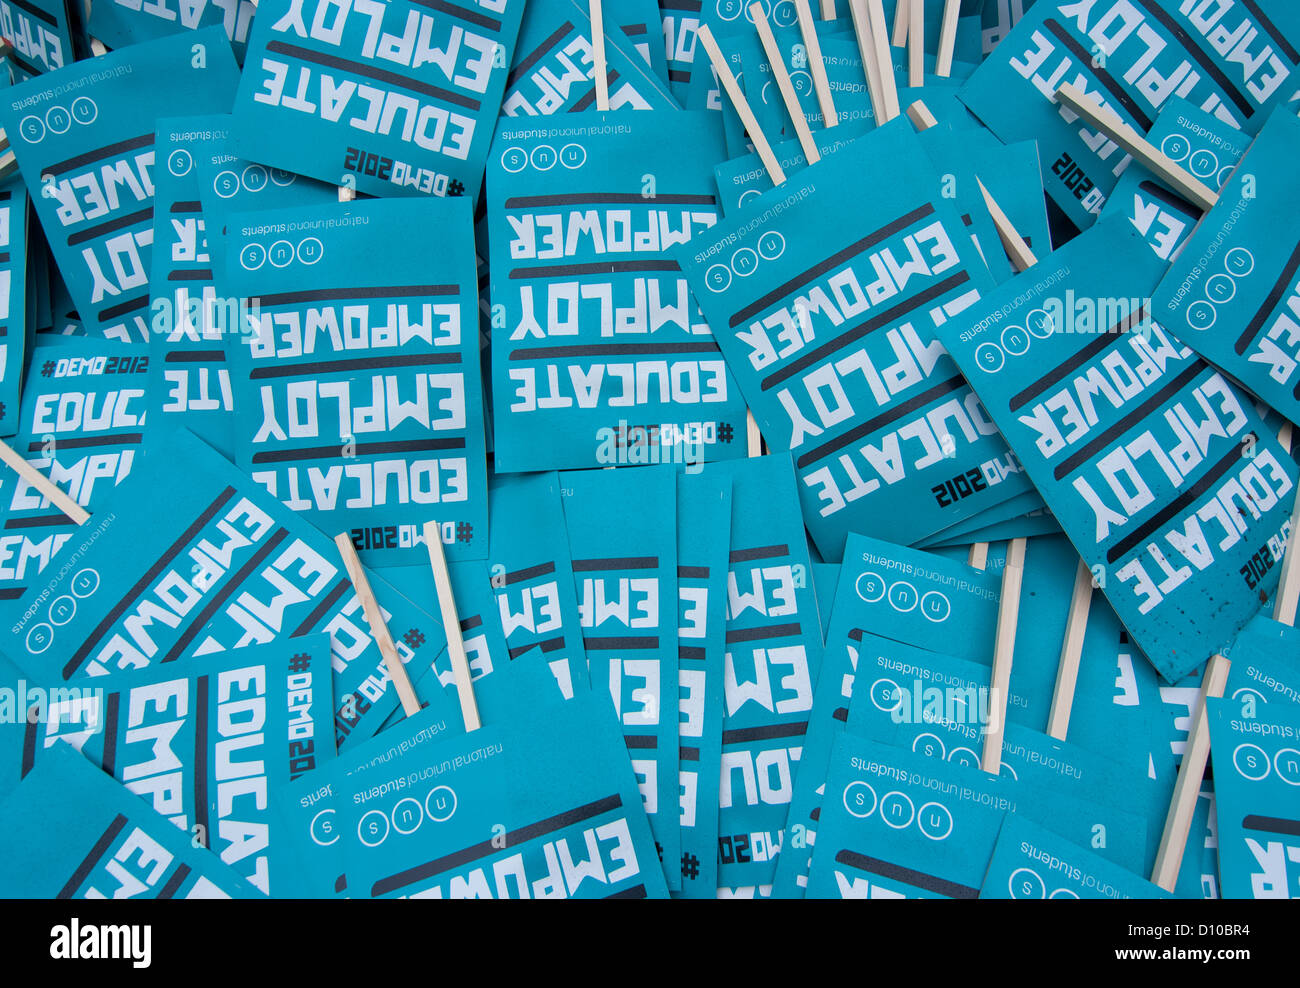 Hundreds of unused placards scatered on the floor, Temple place starting point of the Students London Demo. - Stock Image